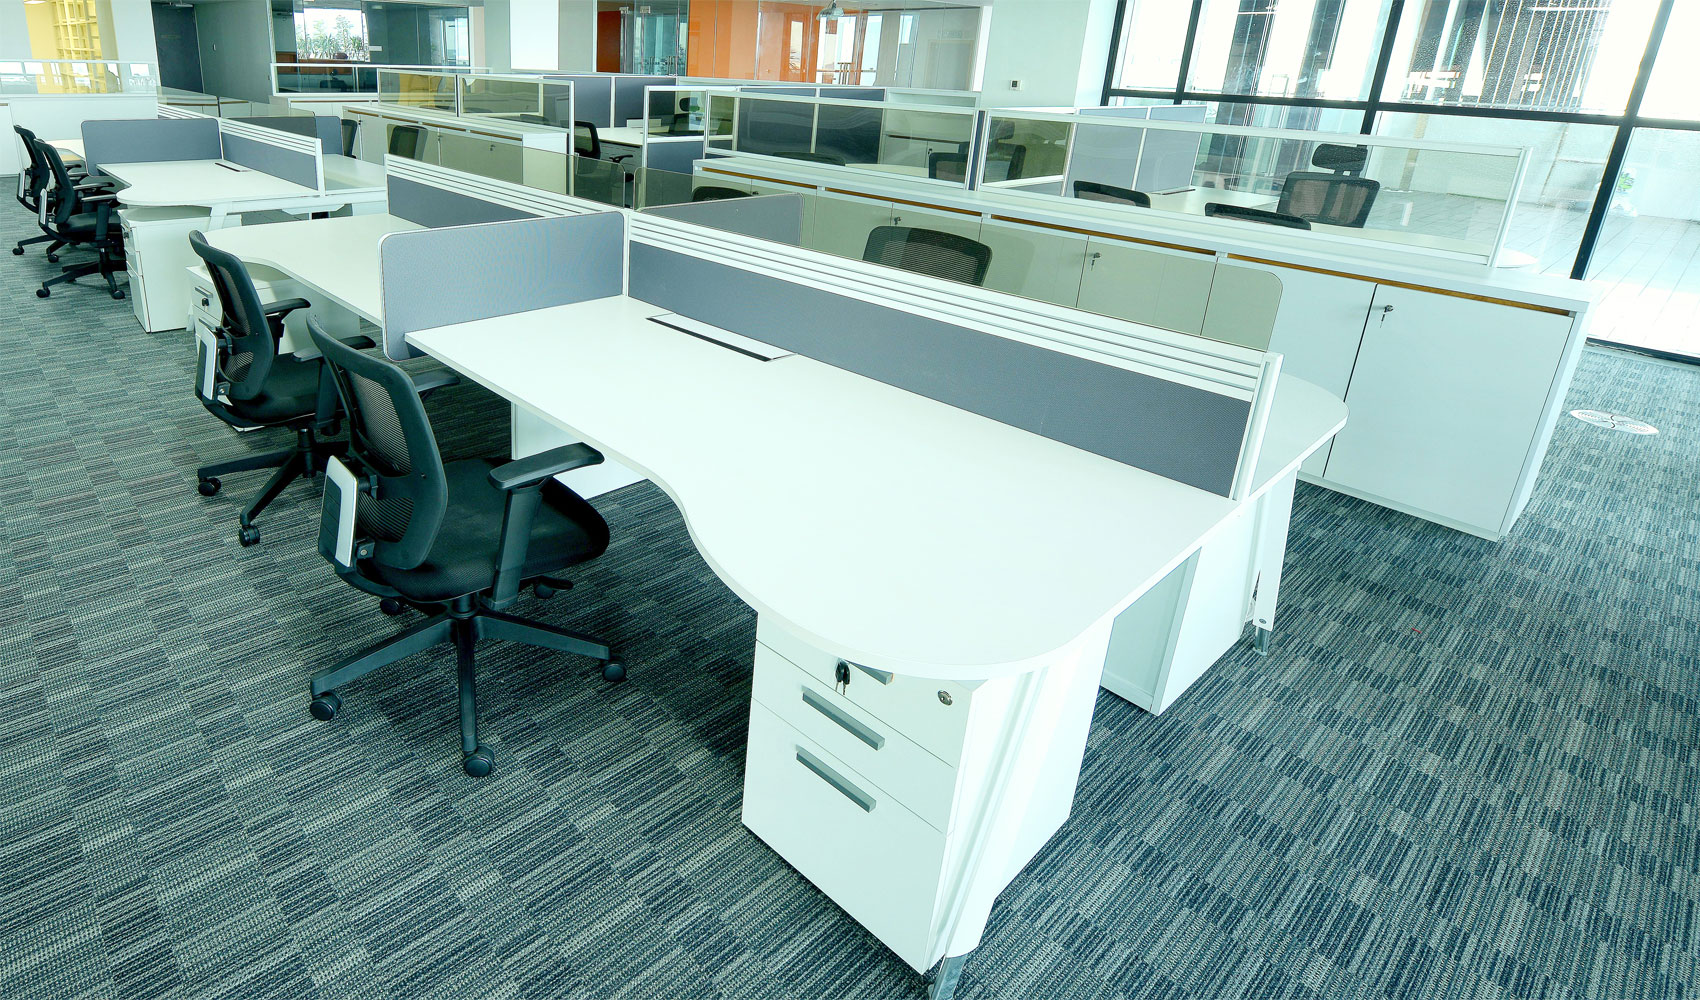 Memento Design (M) Sdn Bhd| Office Furnitures| Solutions| Interior